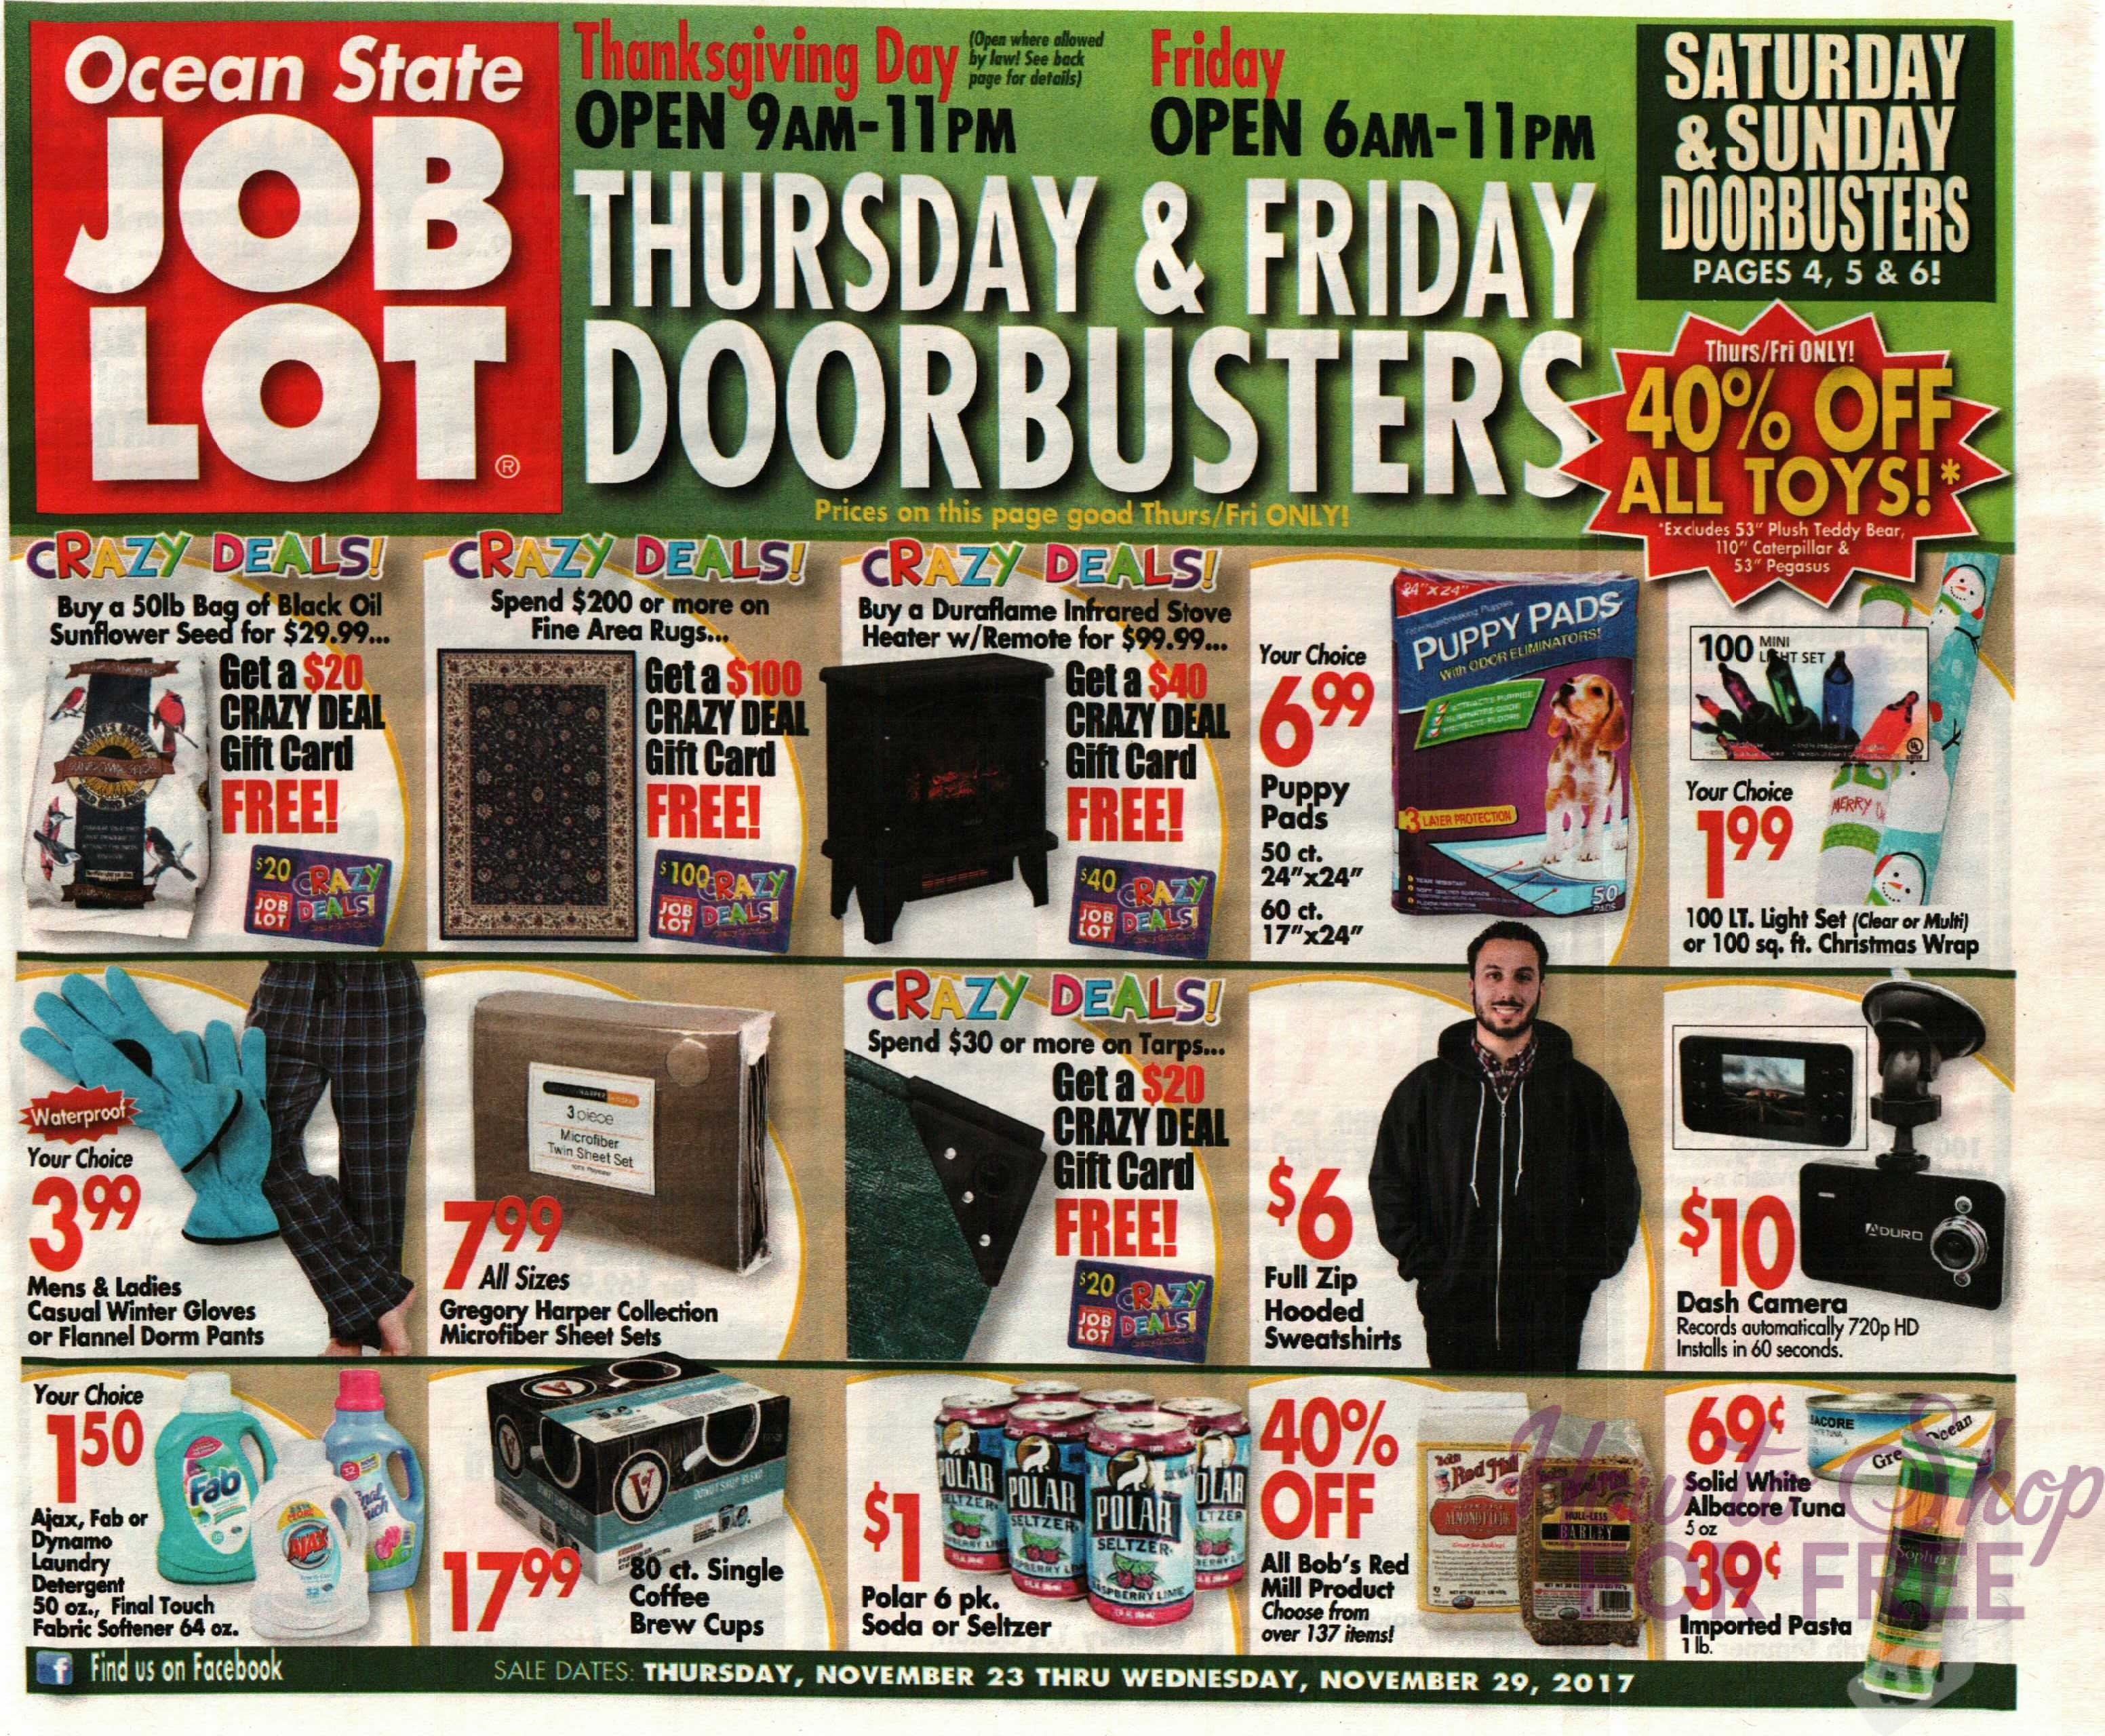 image about Ocean State Job Lot Coupons Printable identify OSJL Black Friday Advert How towards Retail outlet For Free of charge with Kathy Spencer